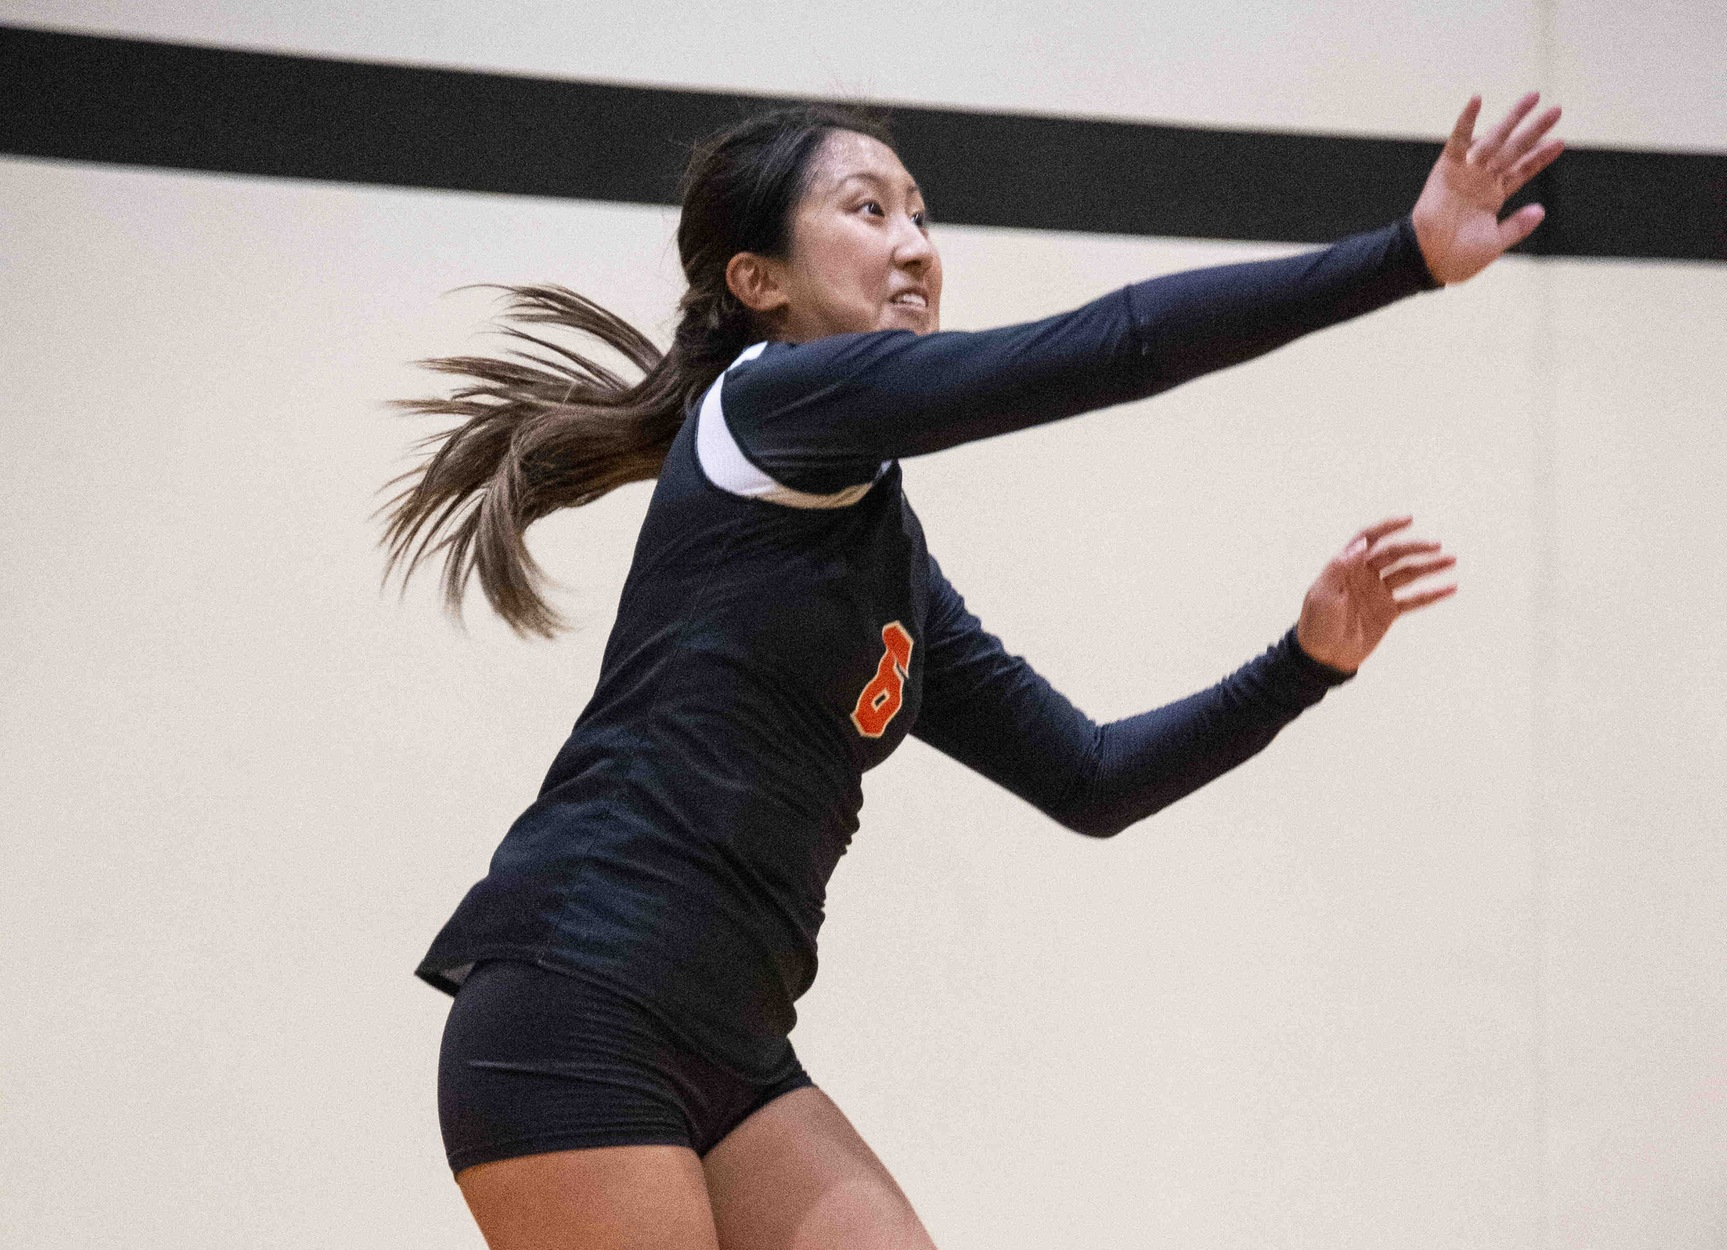 Fan's 20-20 Night Powers Volleyball Comeback at Pomona-Pitzer